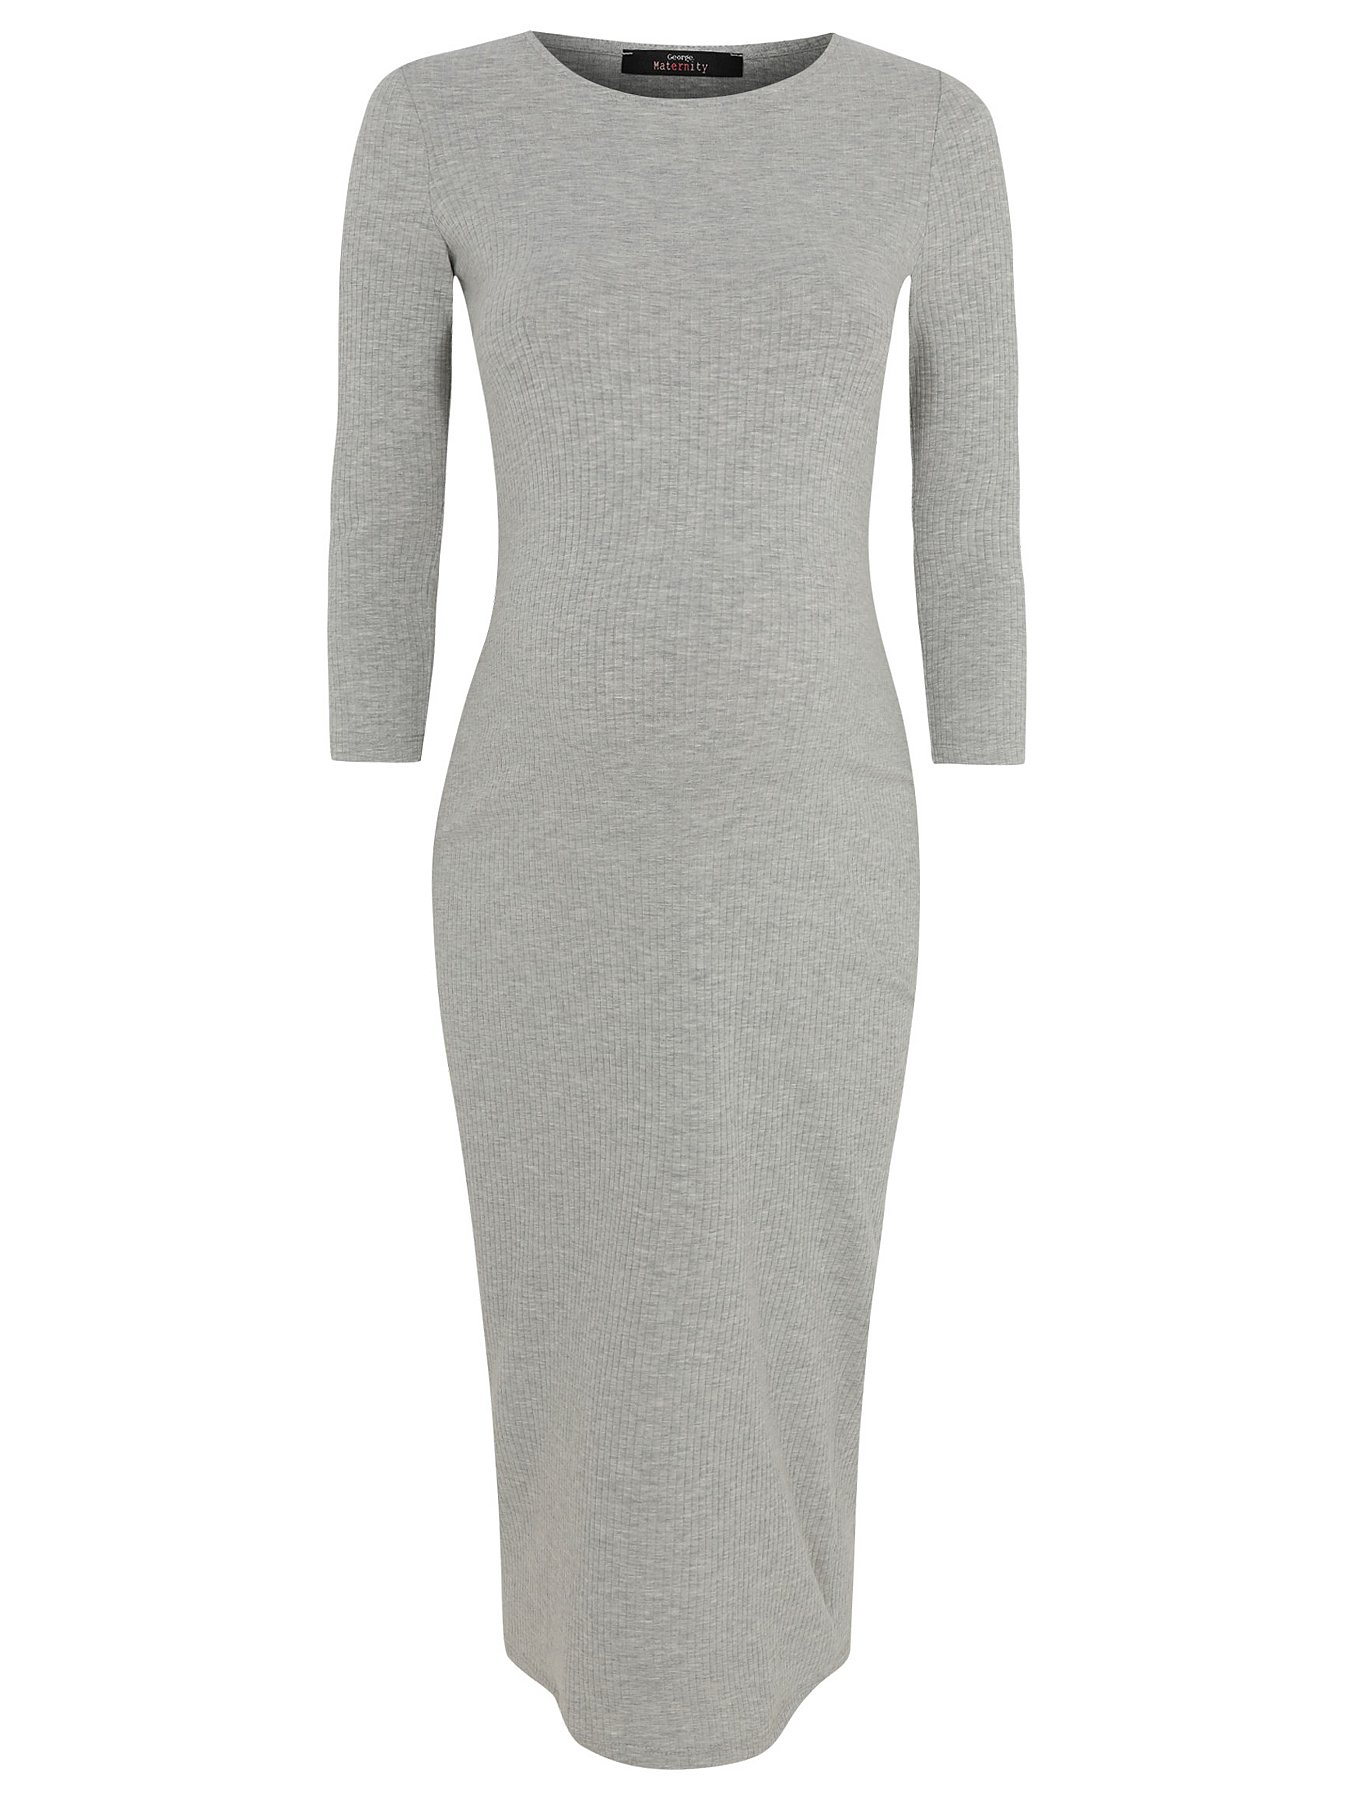 00d6ebfeea Maternity Light Grey Ribbed Bodycon Midi Dress. Reset